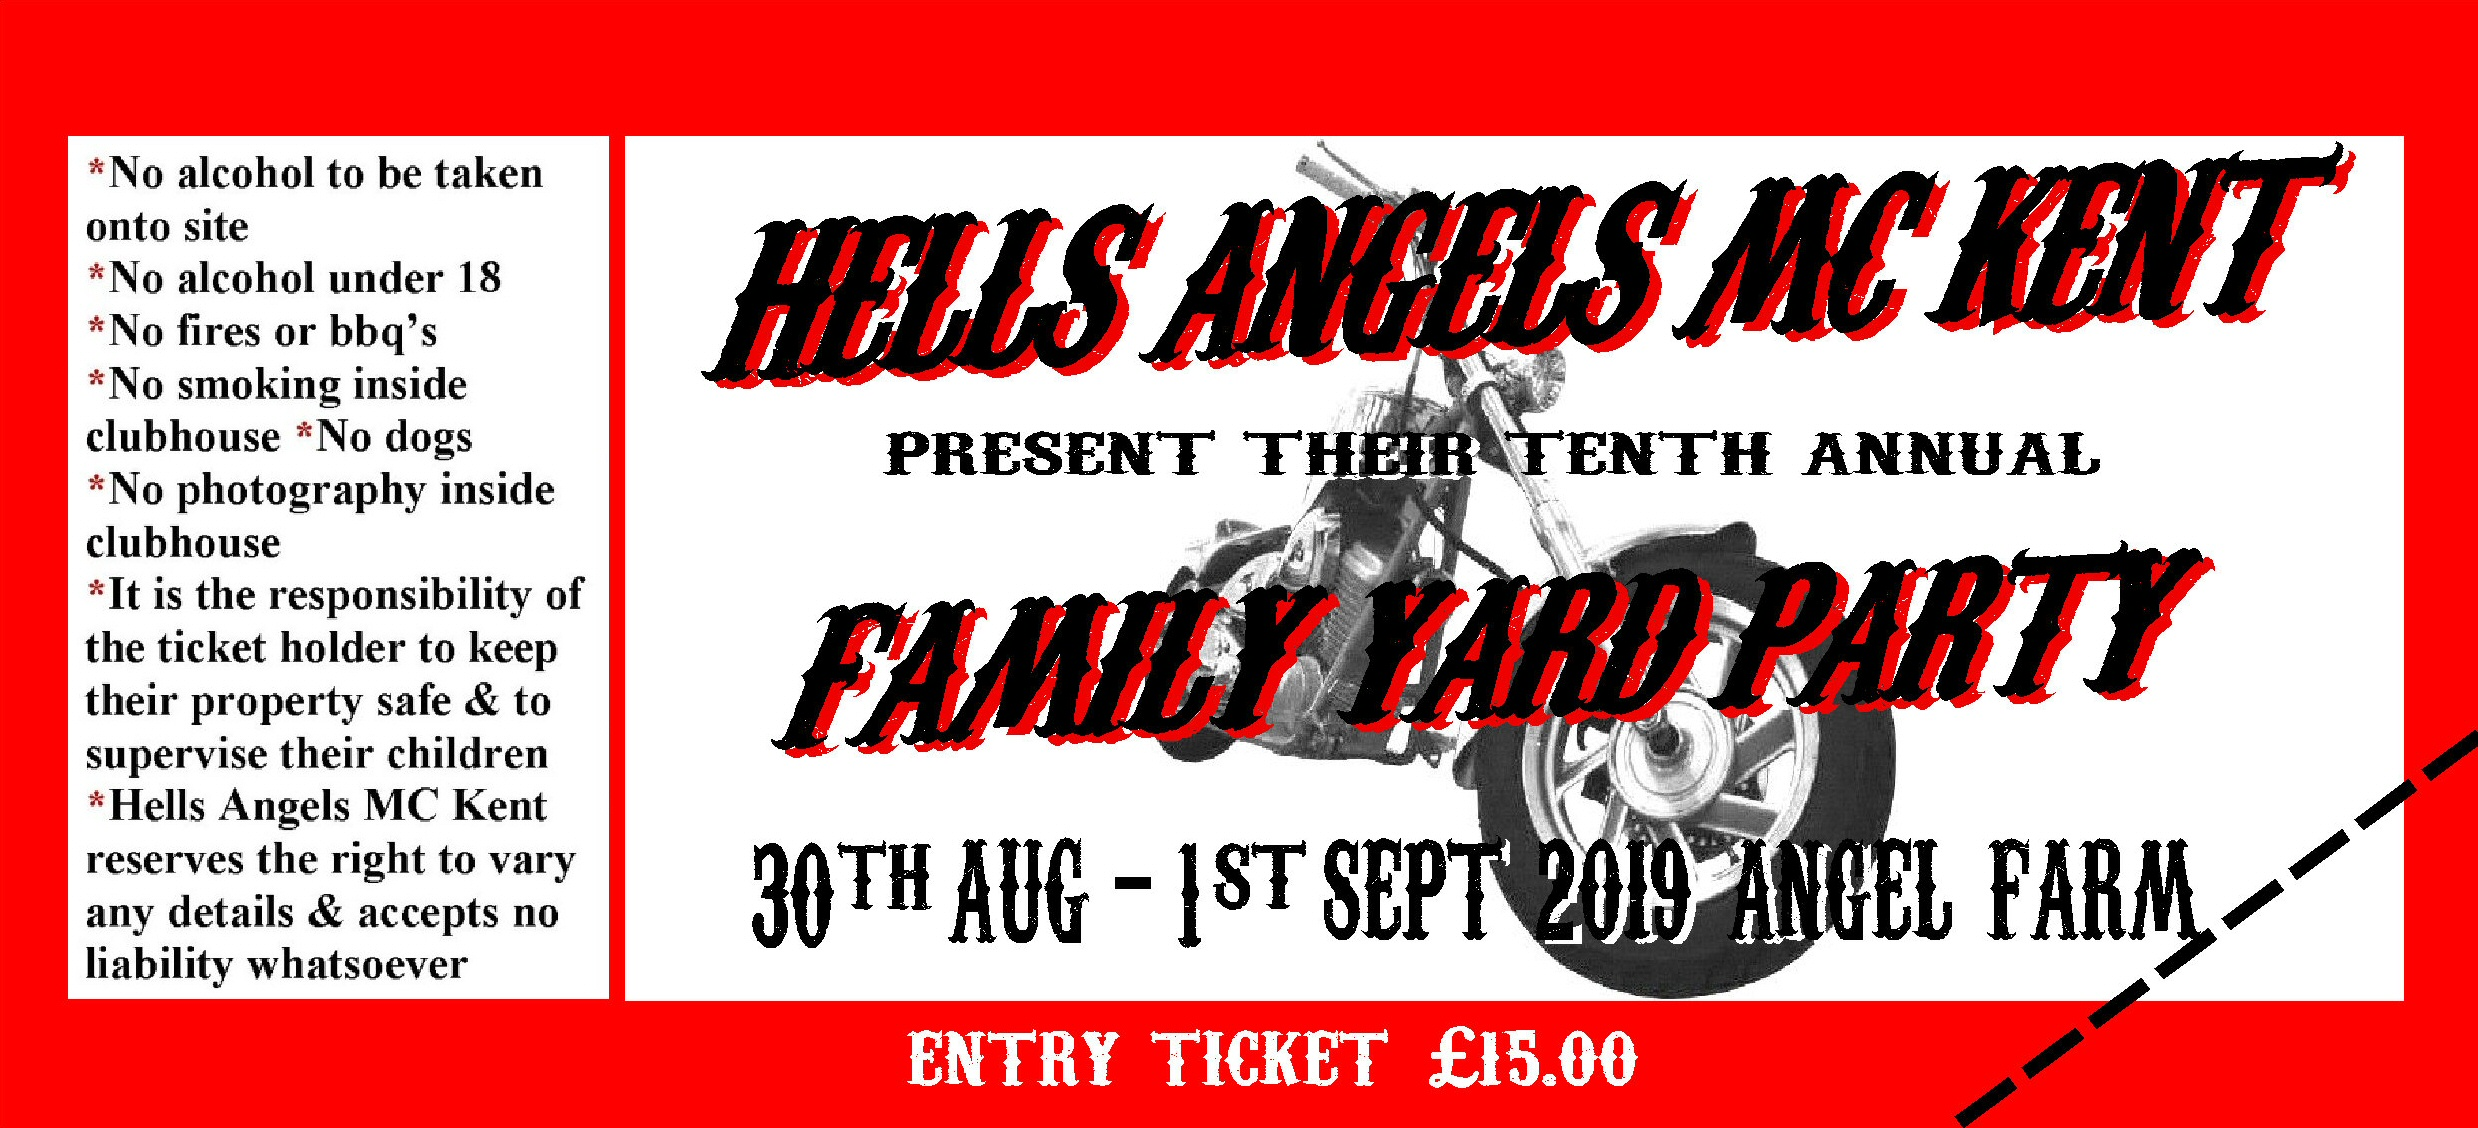 Hells Angels MC Kent – Hells Angels MC Kent